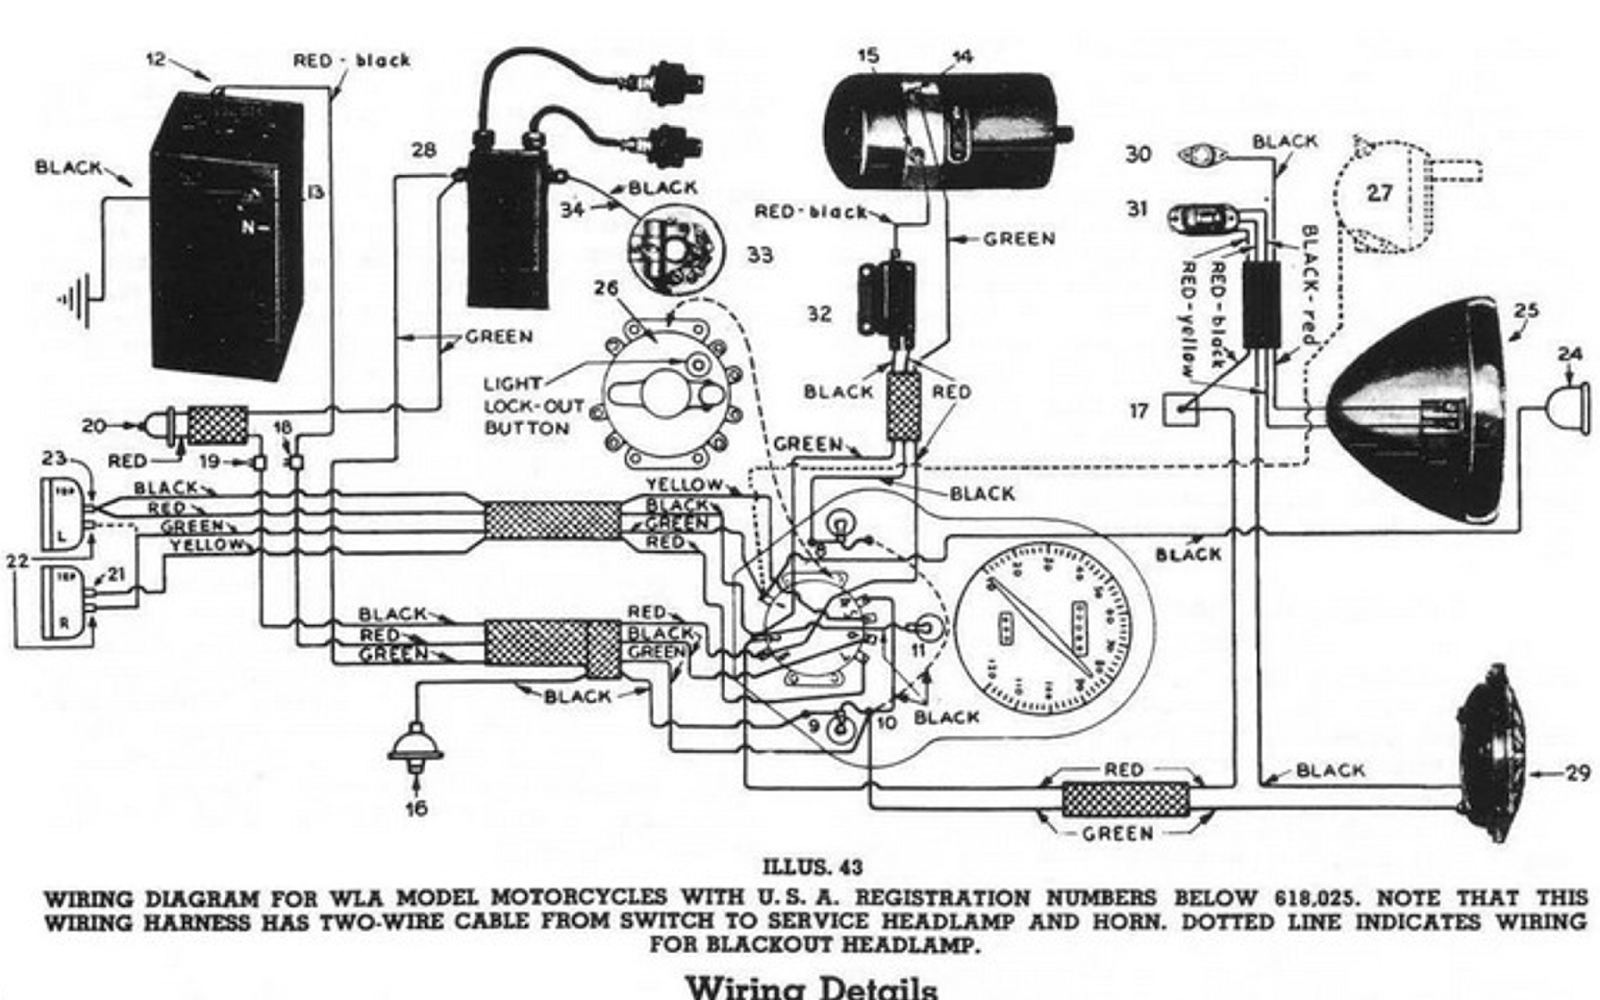 medium resolution of harley wiring diagram wires wiring diagram schematics 1977 harley shovelhead wiring diagram 1941 harley davidson